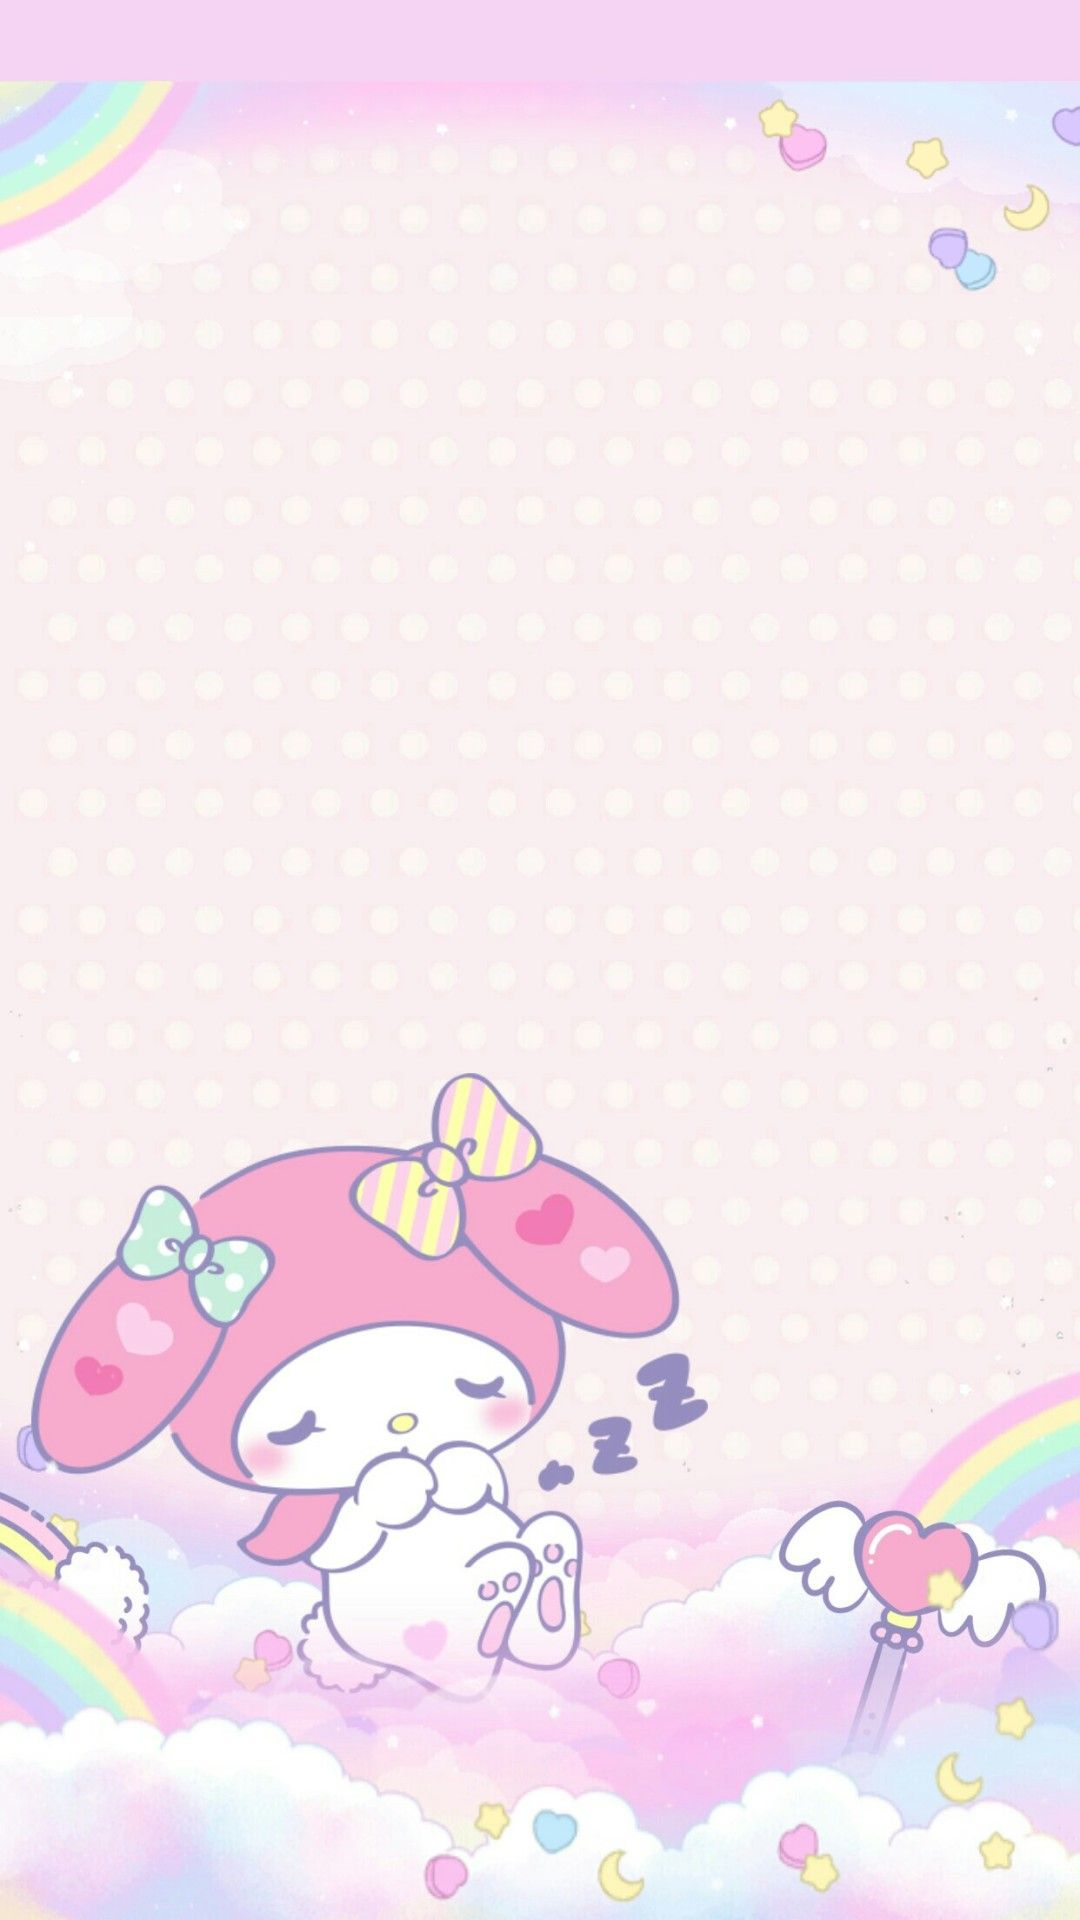 Heymi243 My Melody Unicorn Wallpaper By Me If U Use My Wall Give Me Credit Please My Melody Wallpaper Sanrio Wallpaper Unicorn Wallpaper